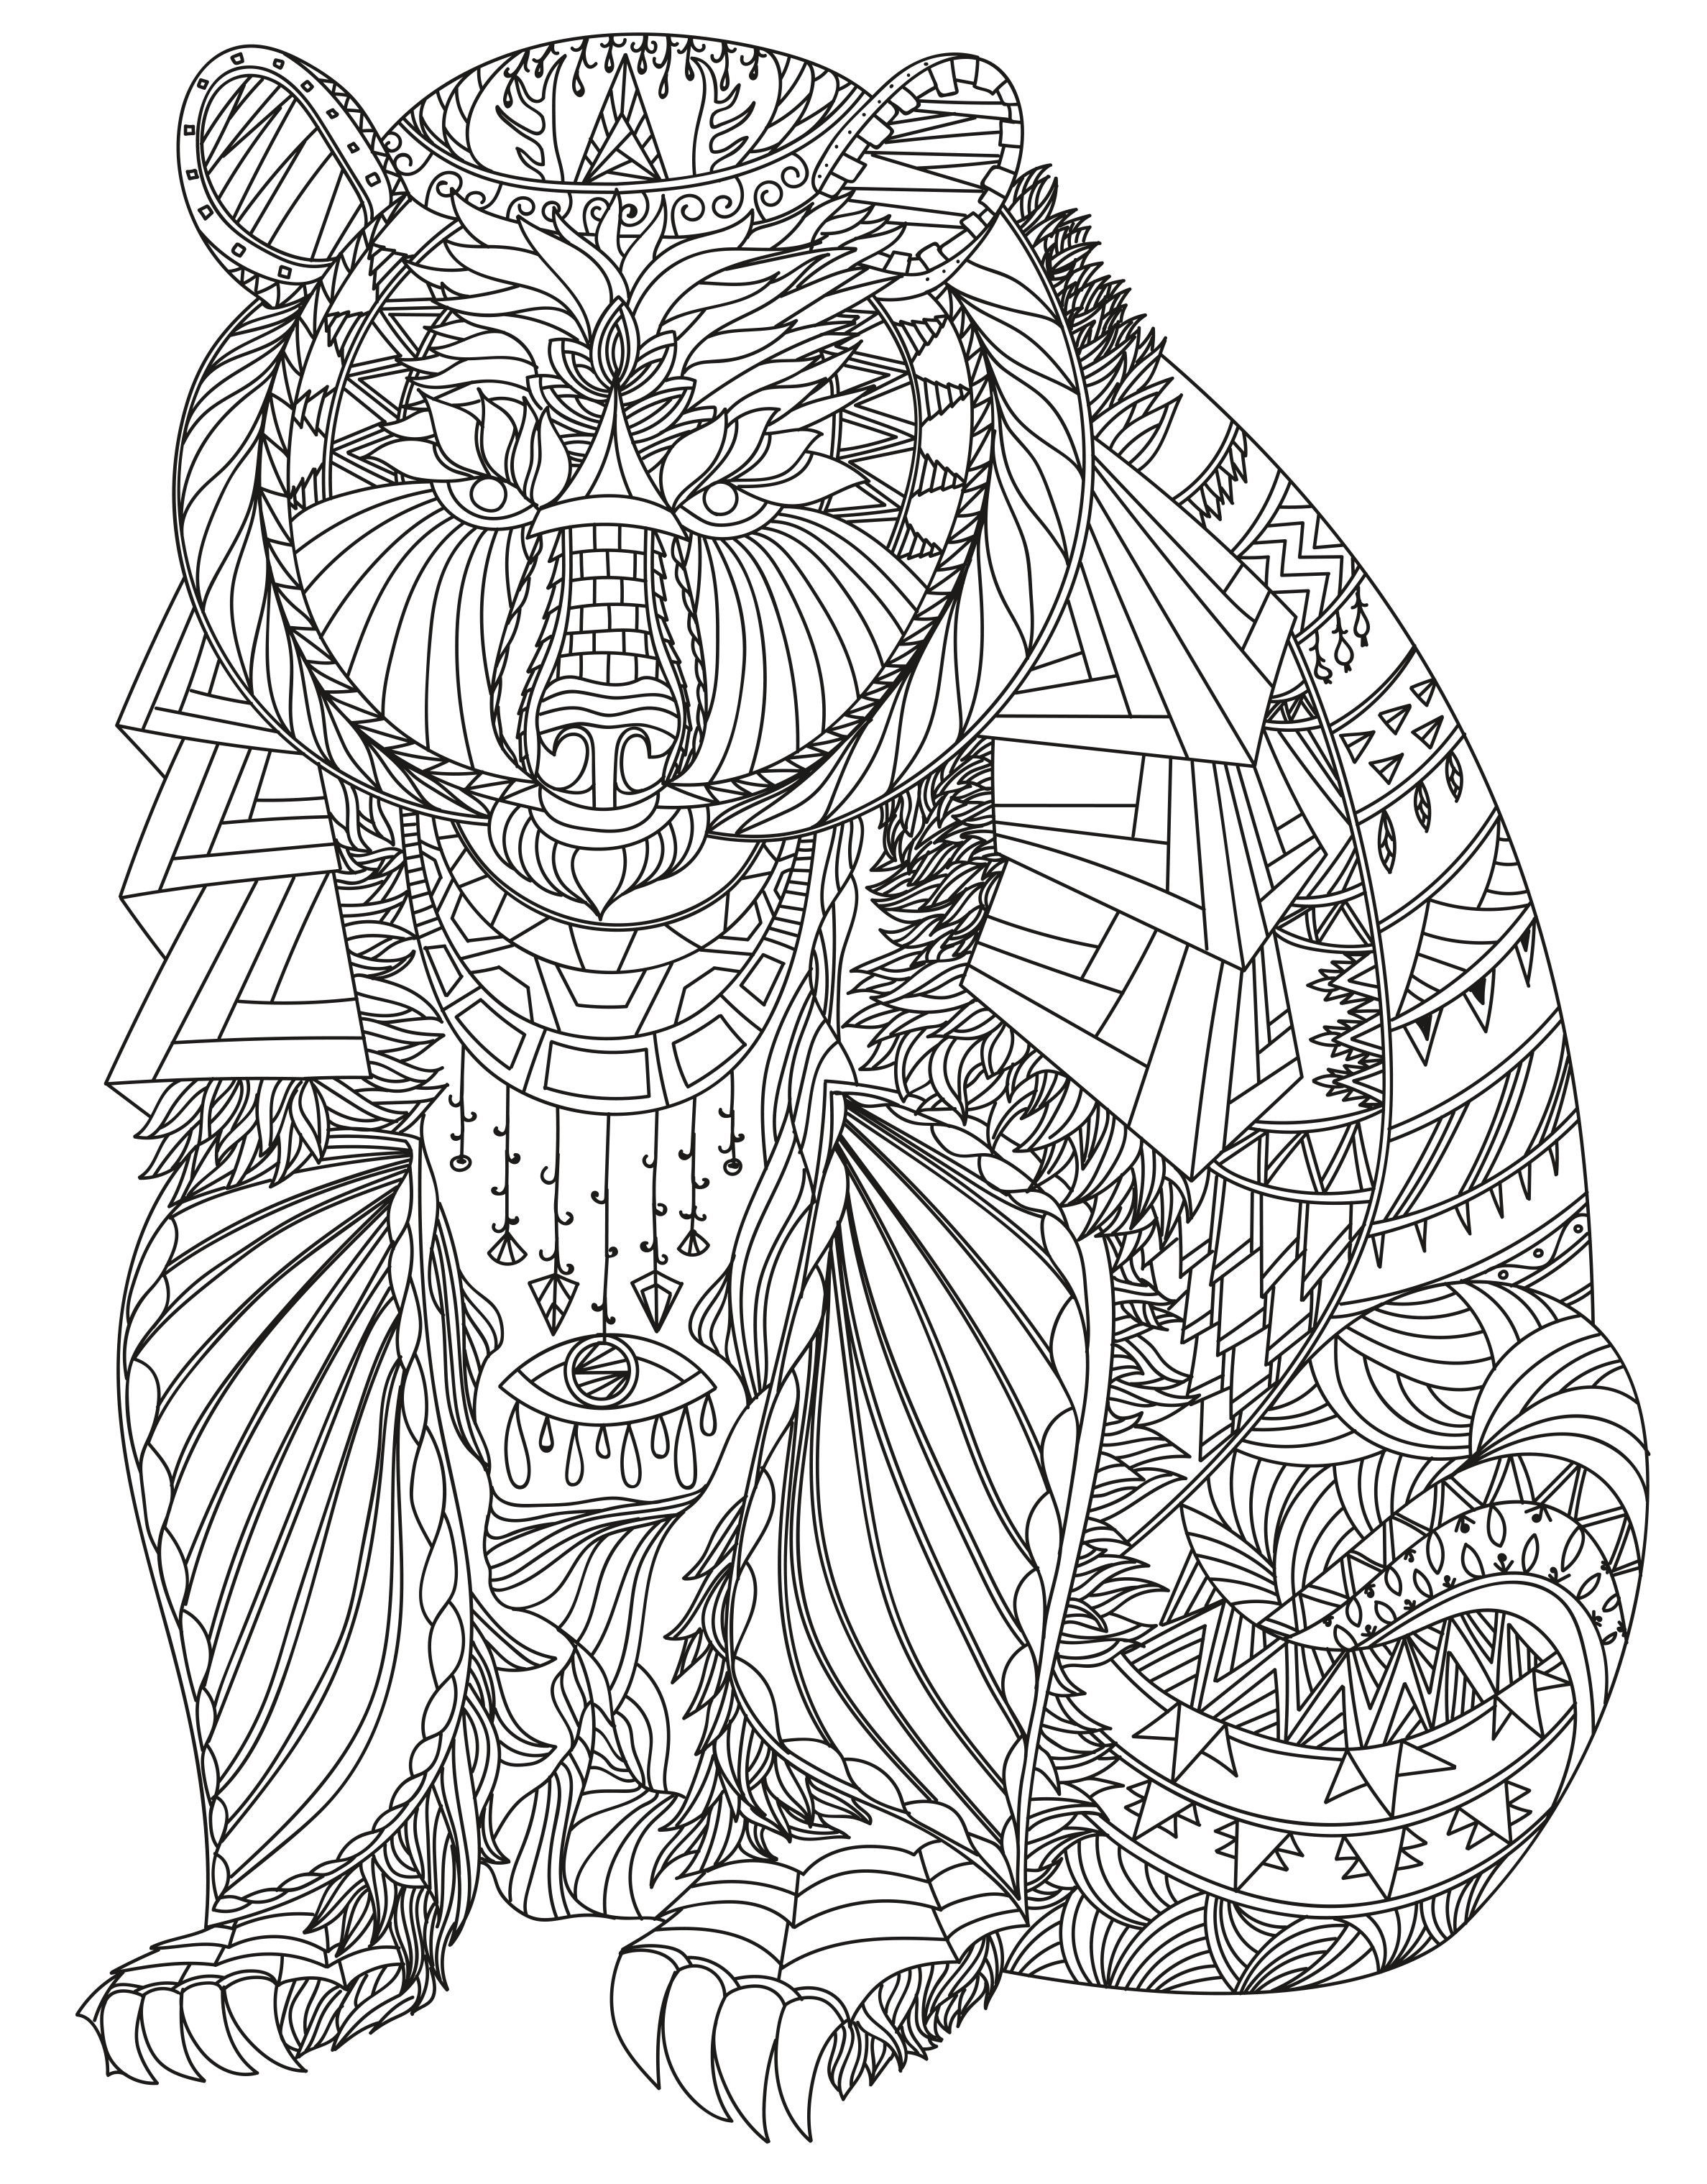 Best ideas about Calming Coloring Sheets For Kids . Save or Pin Relaxing Coloring Pages coloringsuite Now.